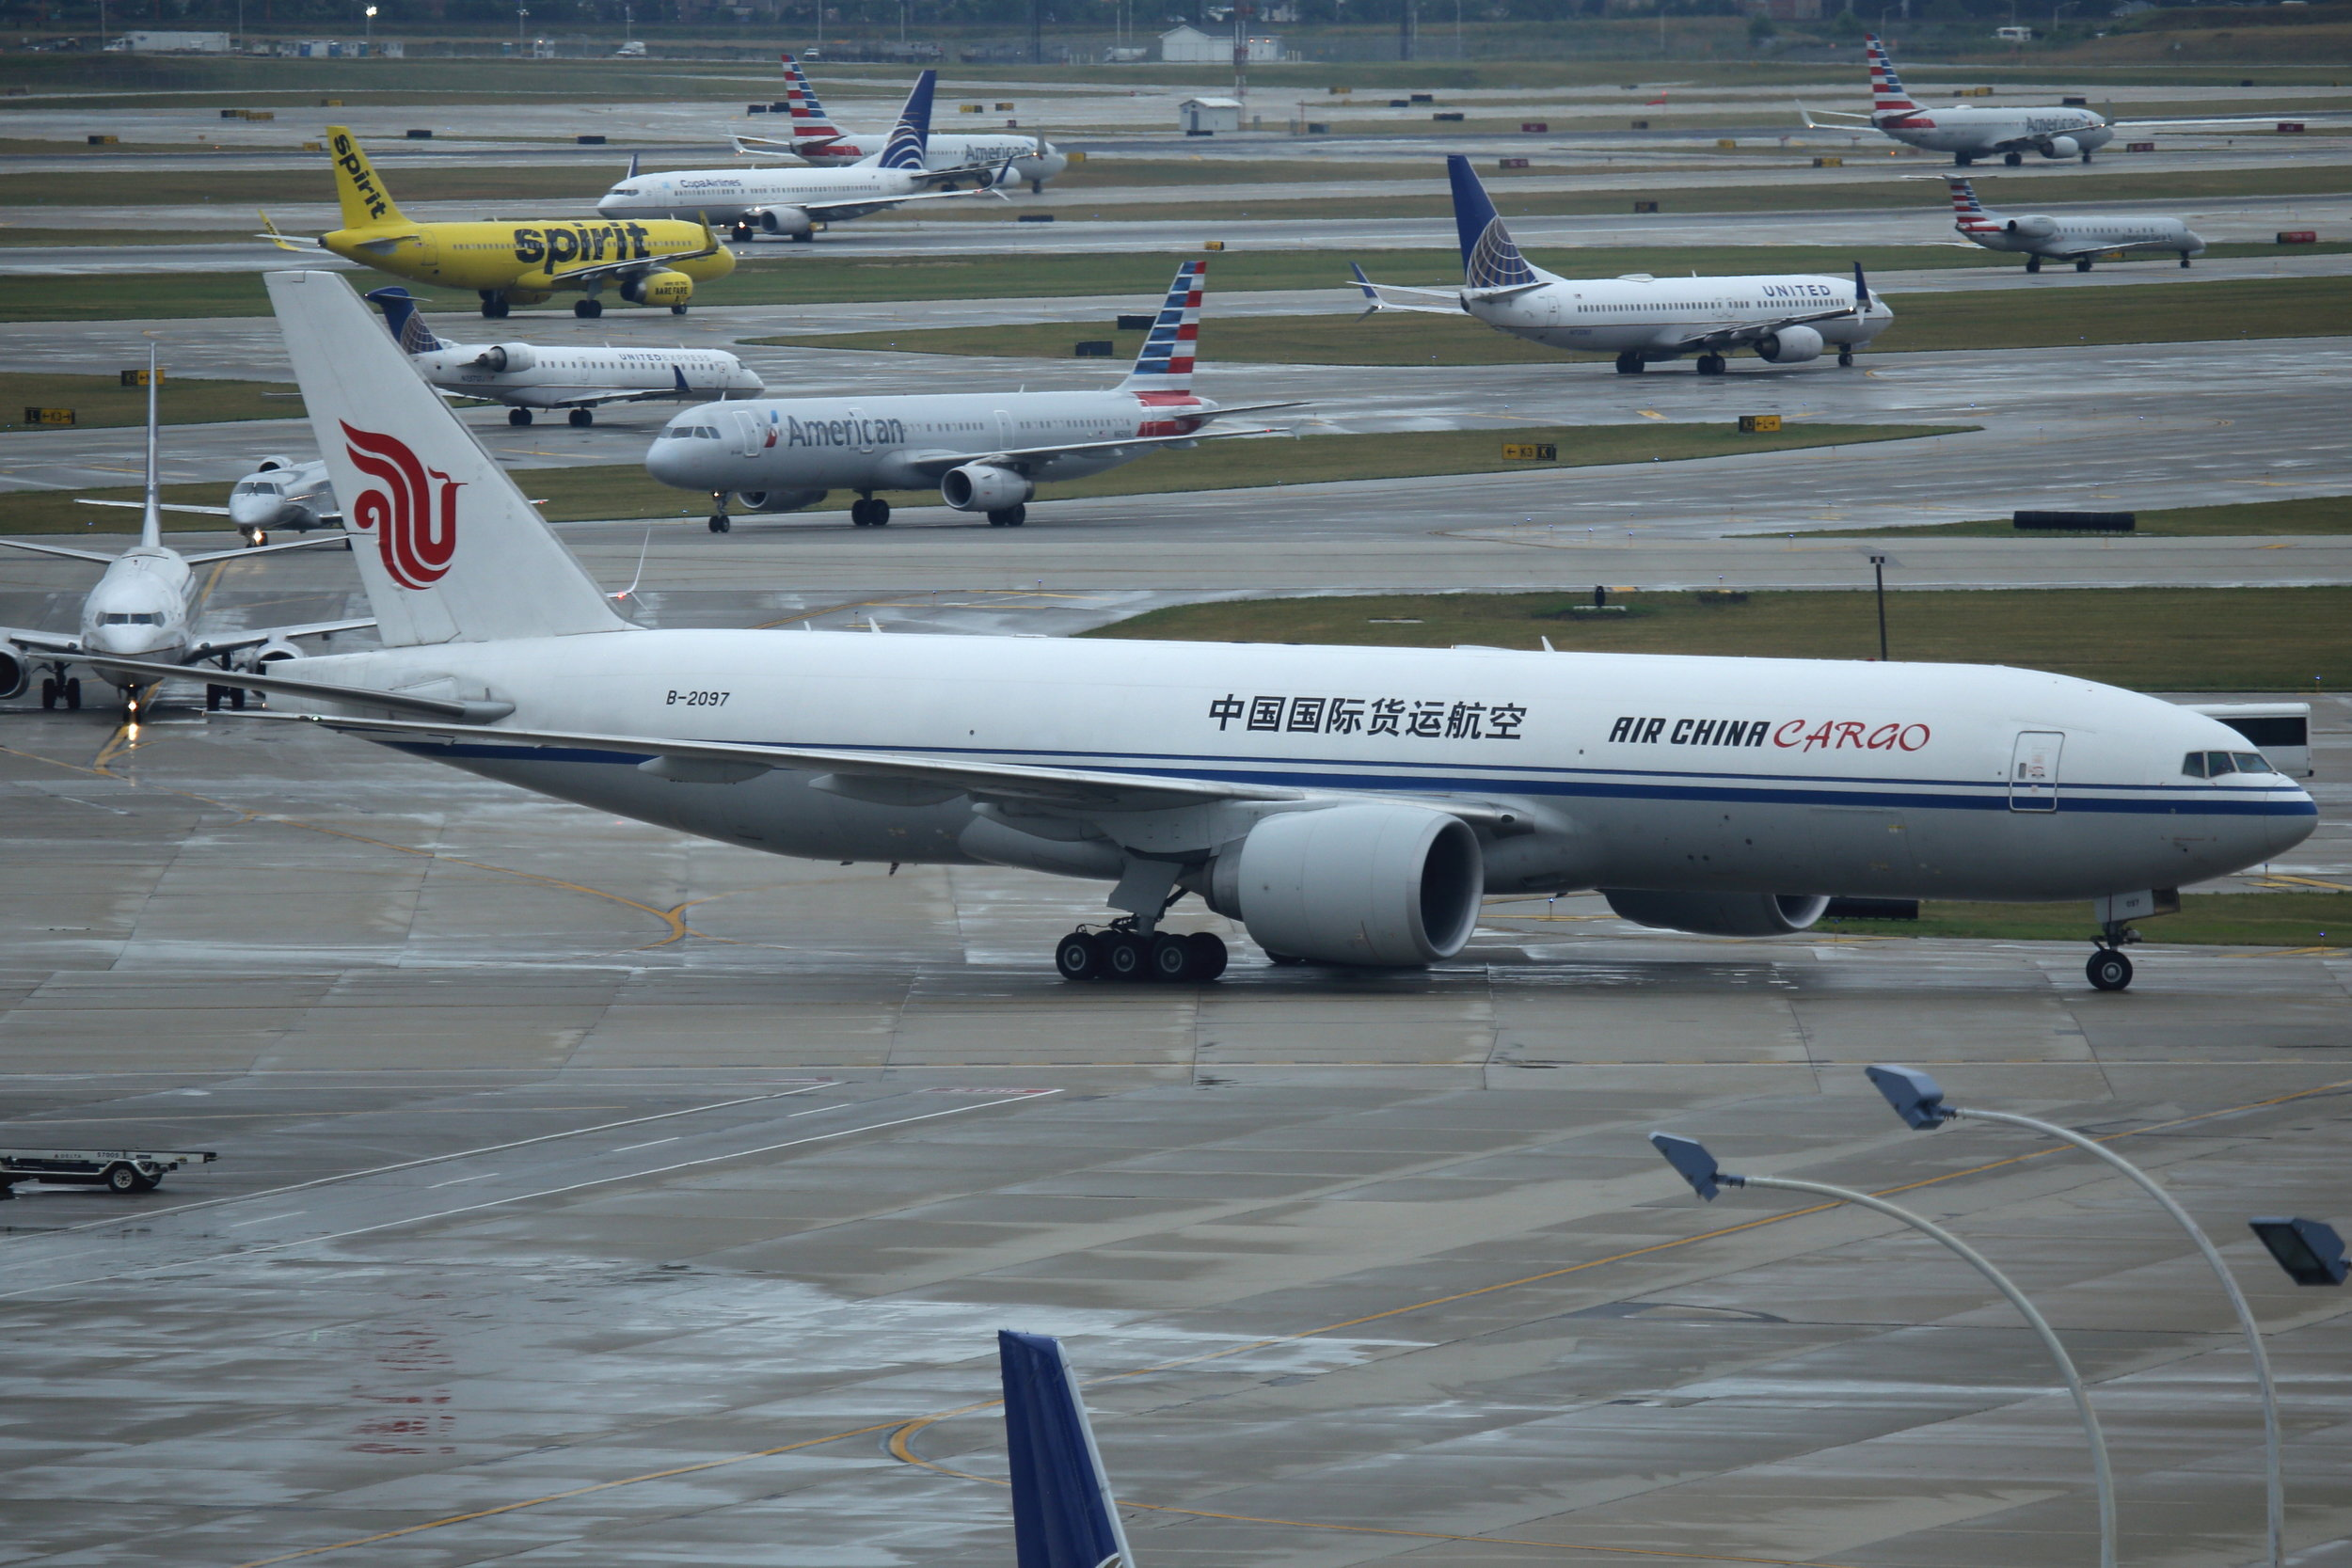 B-2097 Air China Cargo B777-FFT taken from the Hilton Hotel at Chicago O'Hare Airport 21st July 2018 by John Wood